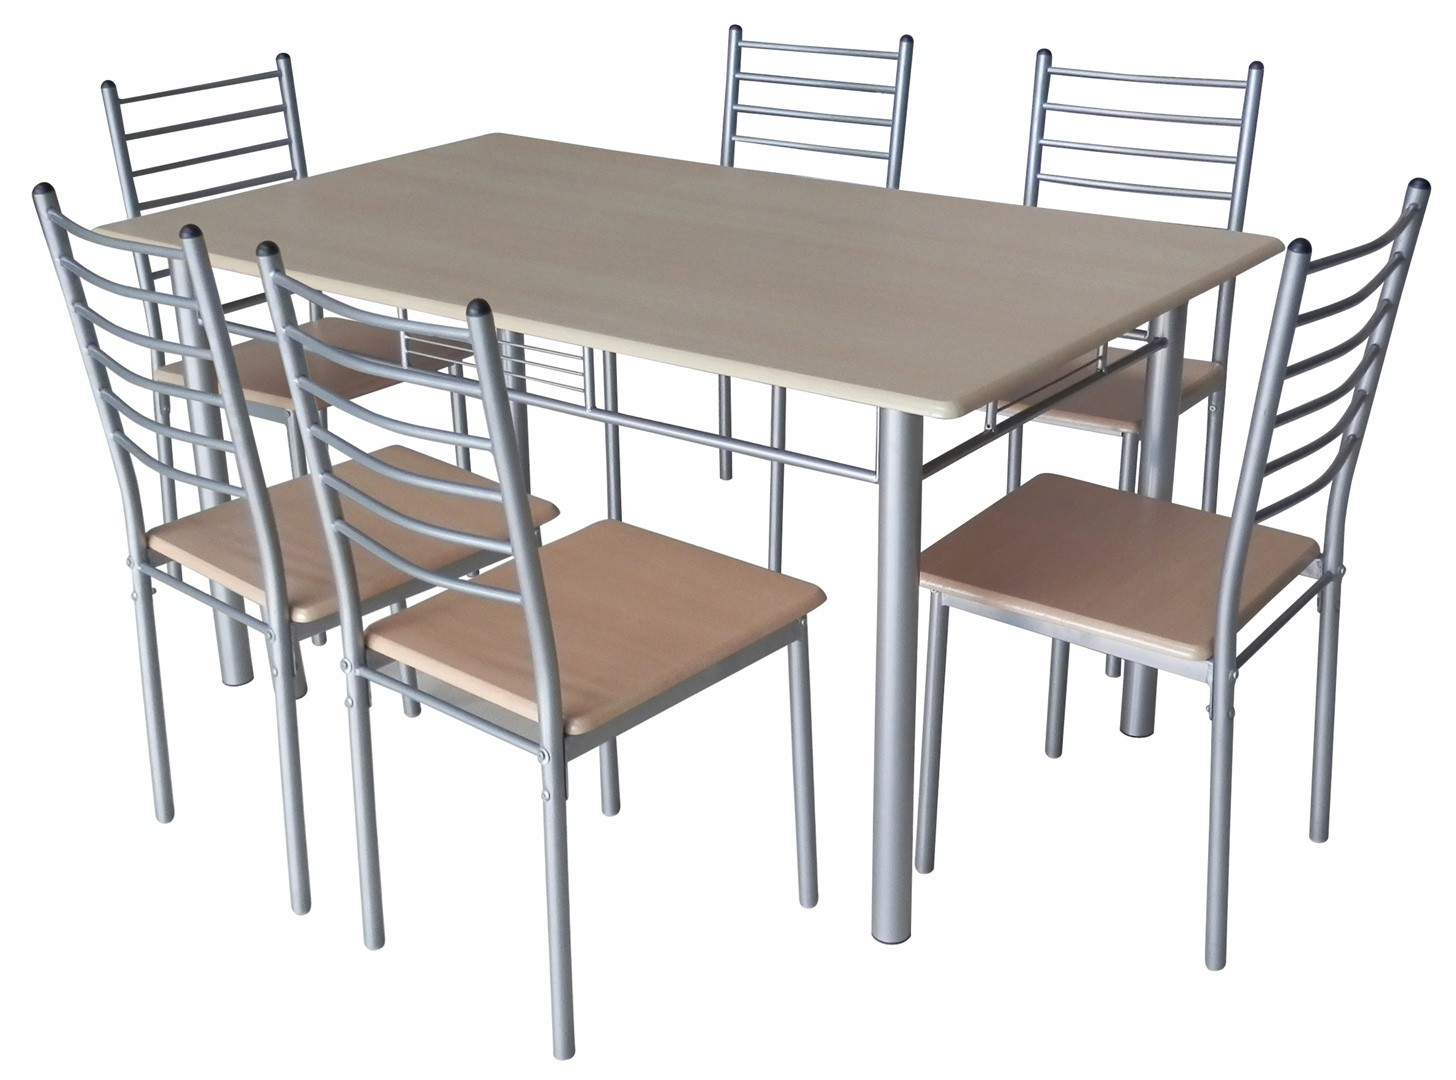 Ensemble table et chaises de cuisine but chaise id es de d coration de ma - Chaise et table de cuisine ...